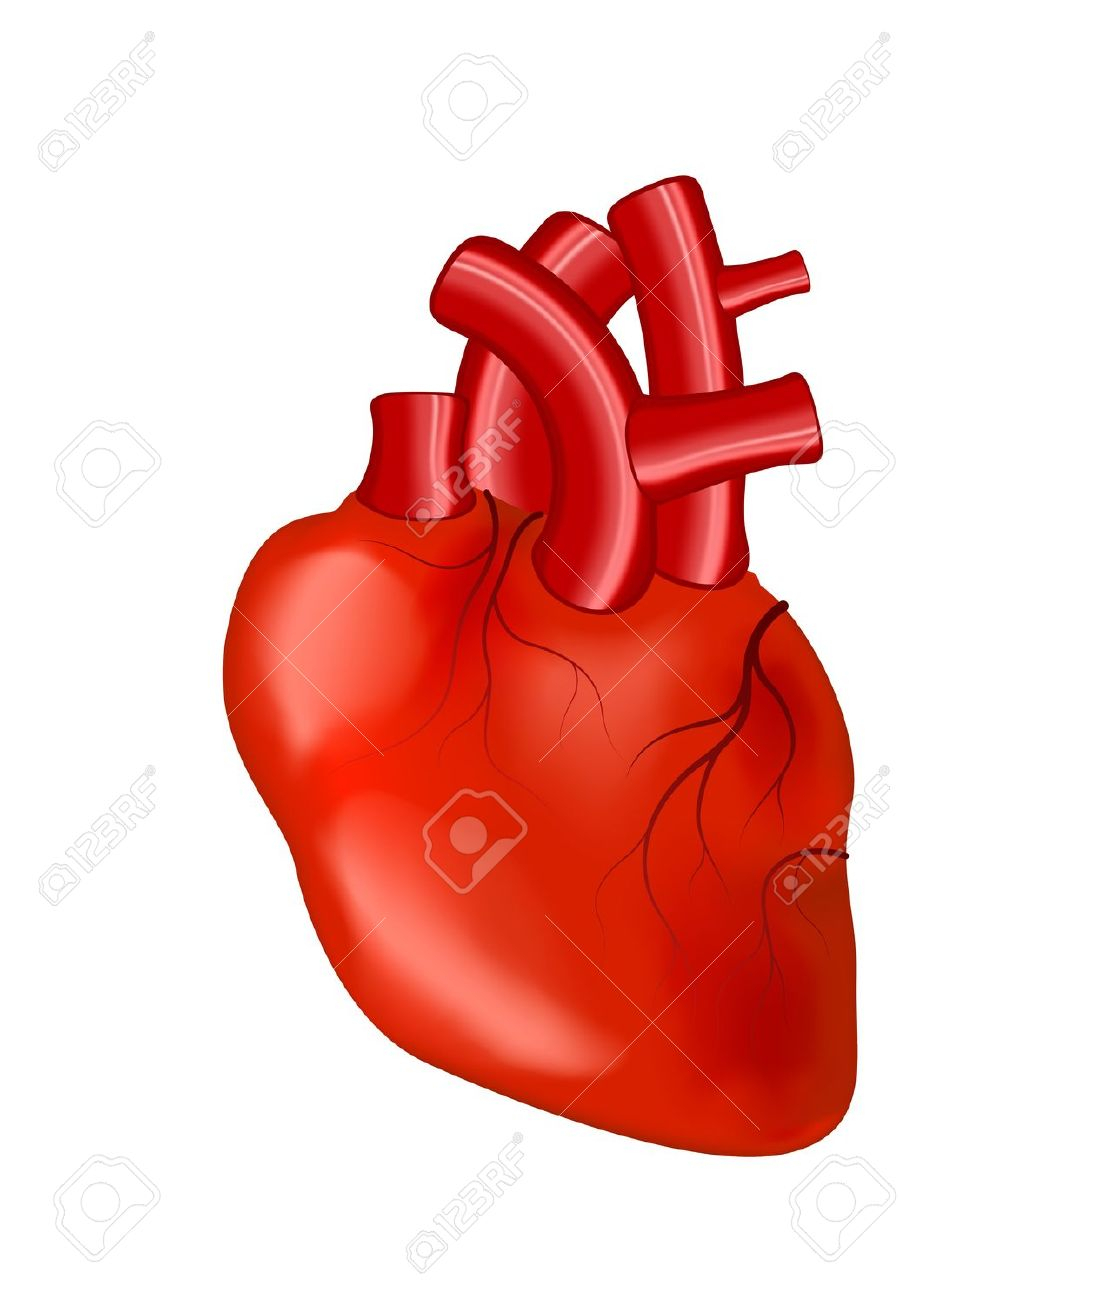 1093x1300 Anatomical Heart Cartoon Real Human Heart Clipart